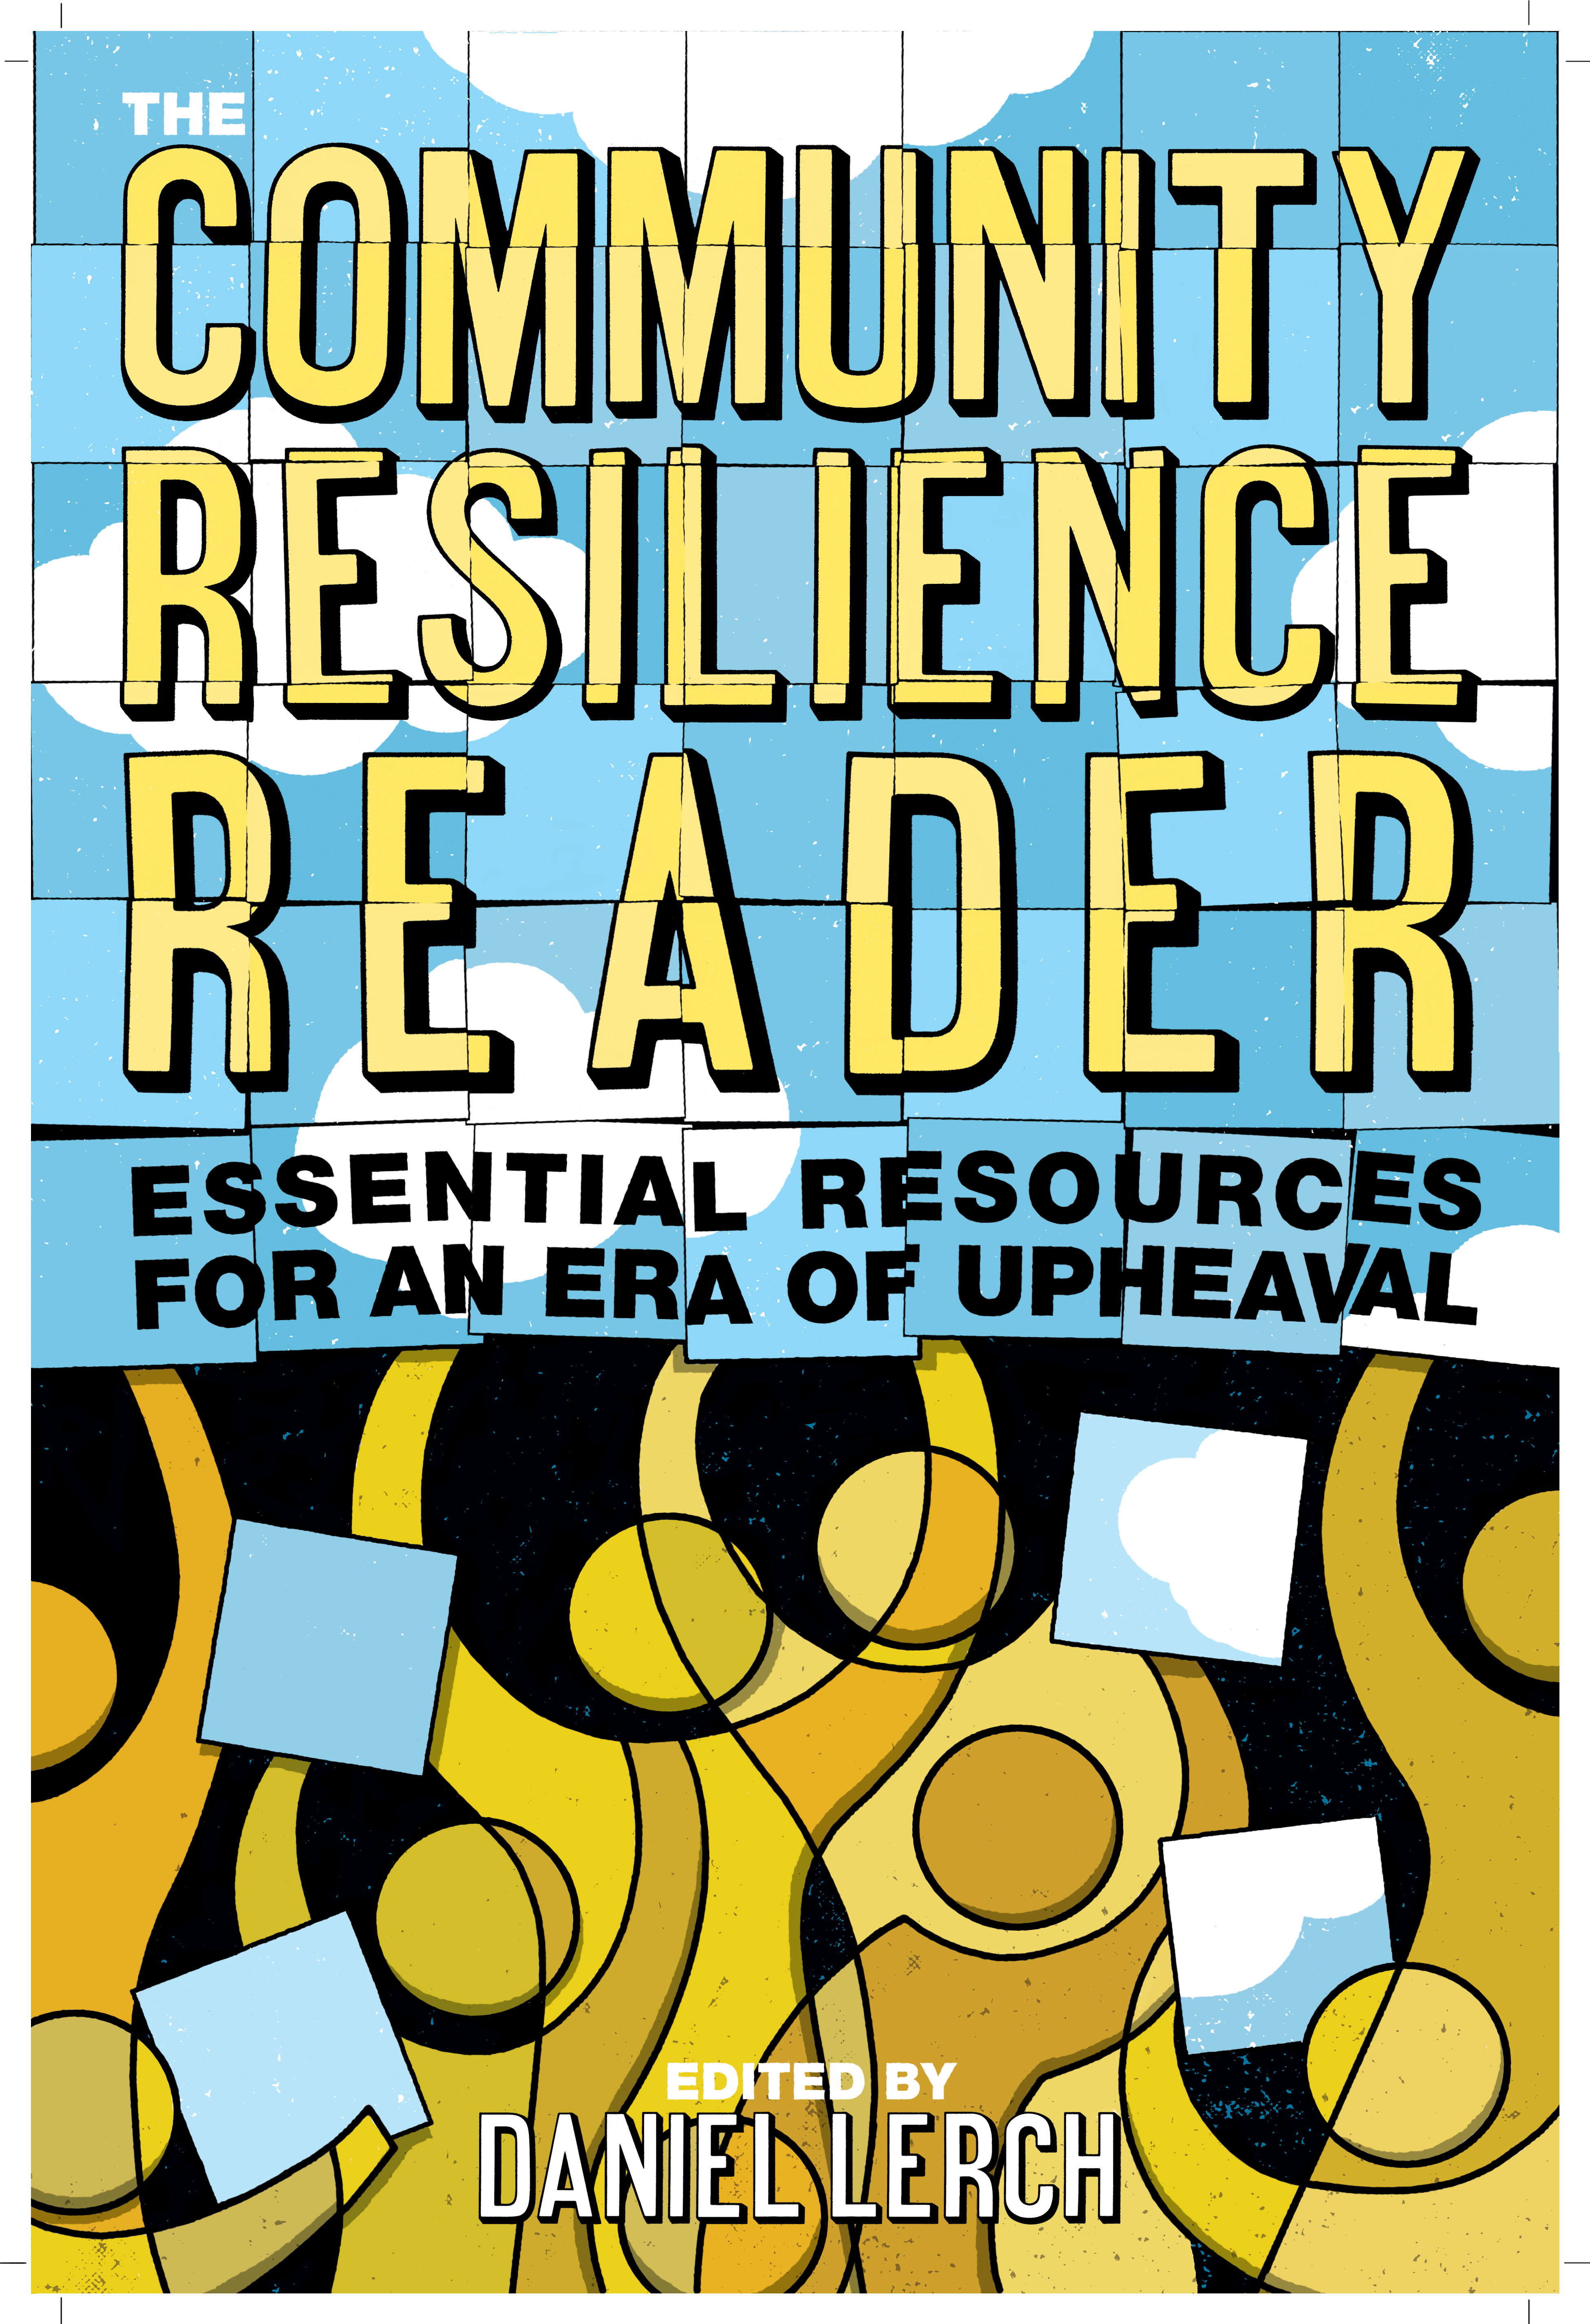 The Community Resilience Reader Essential Resources for an Era of Upheaval